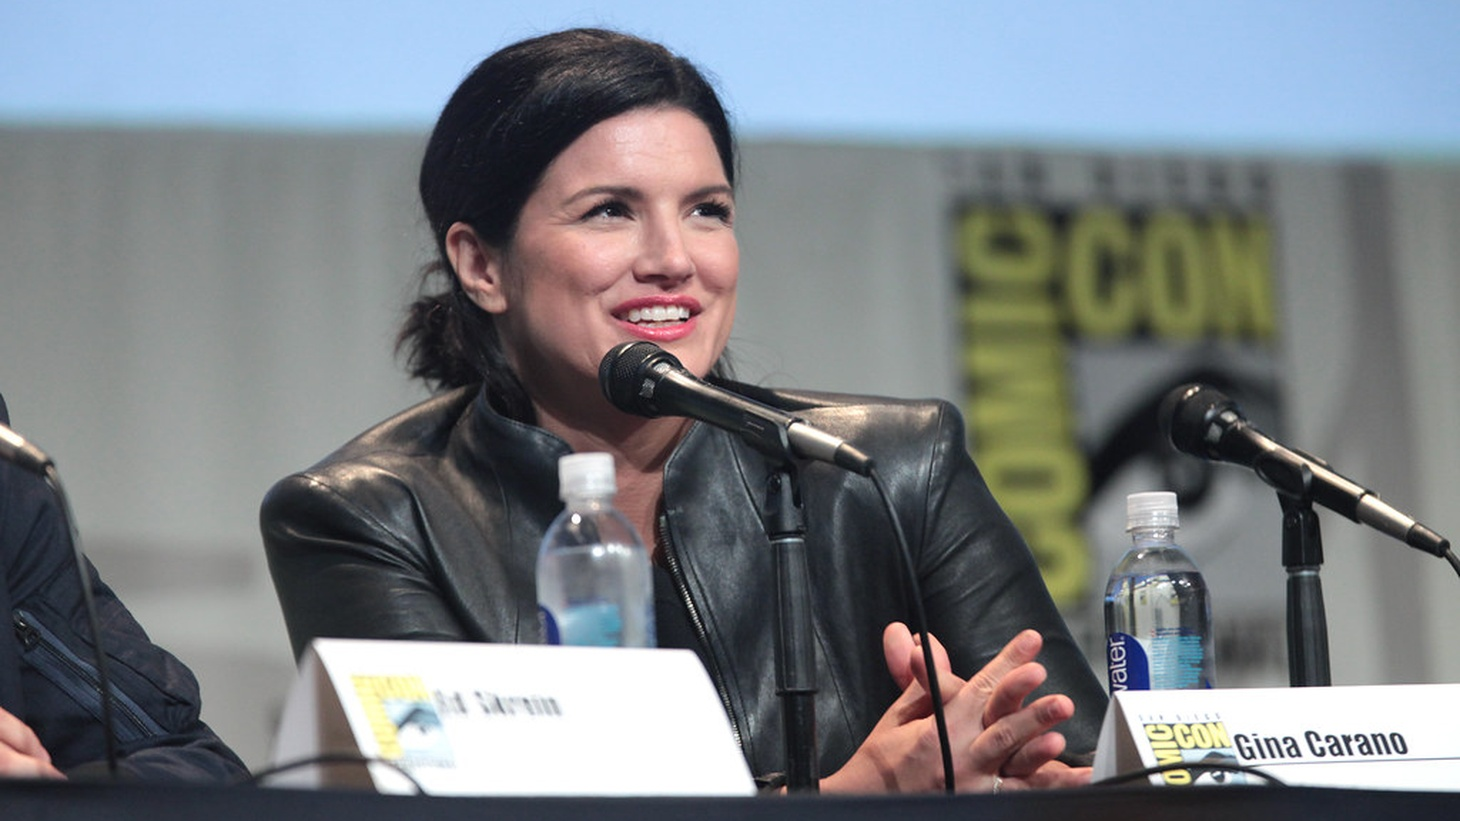 "Gina Carano is part of a recent wave of talent dropped by their agencies for troubling conduct. In Carano's case, ""The Mandalorian"" actress made offensive posts on social media comparing Republicans to Jews in Nazi Germany."